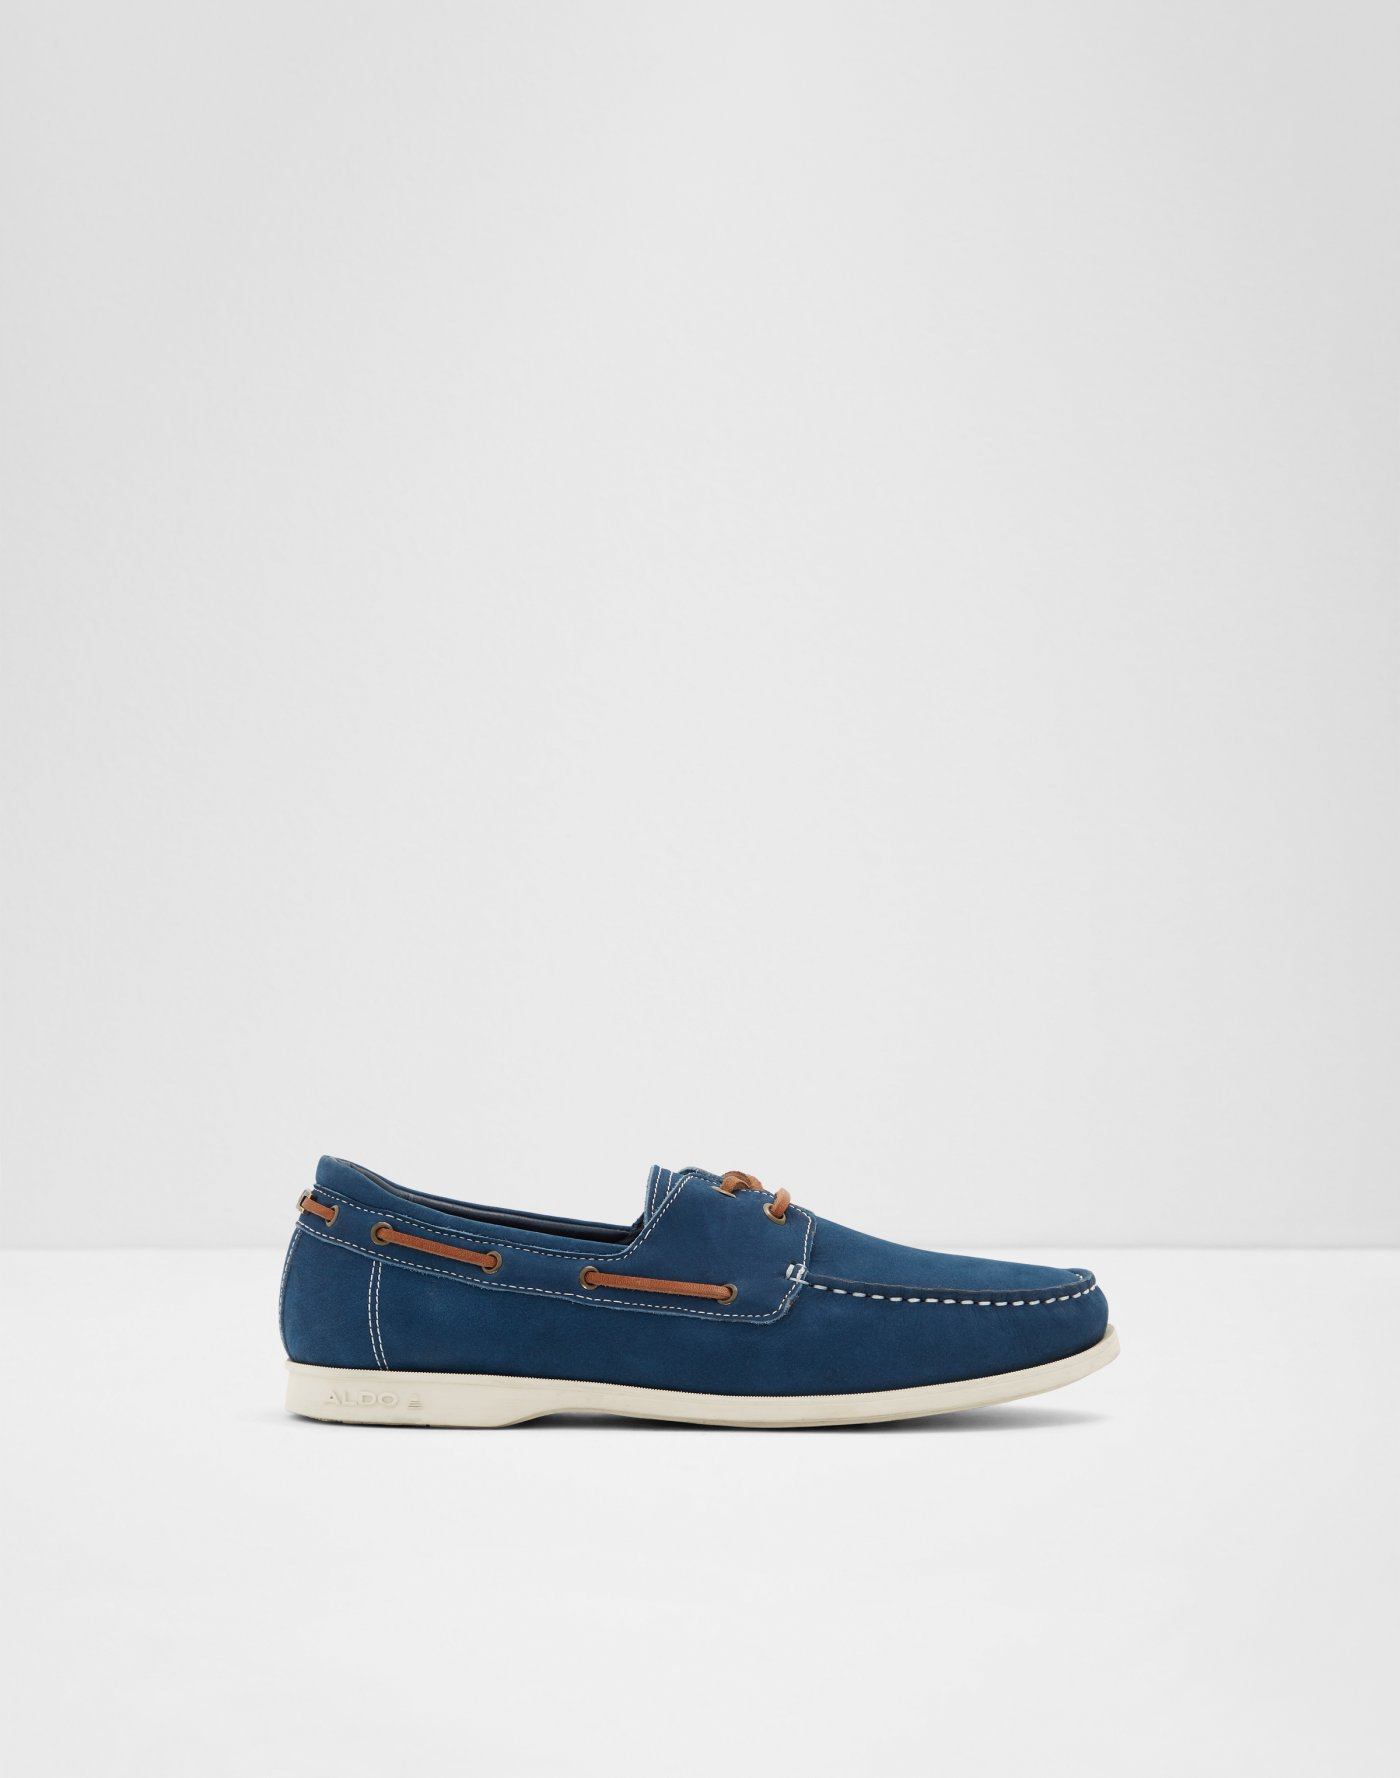 b078071e59 All Men's Sales | Shoes, Accessories And Wallets | ALDO US ...